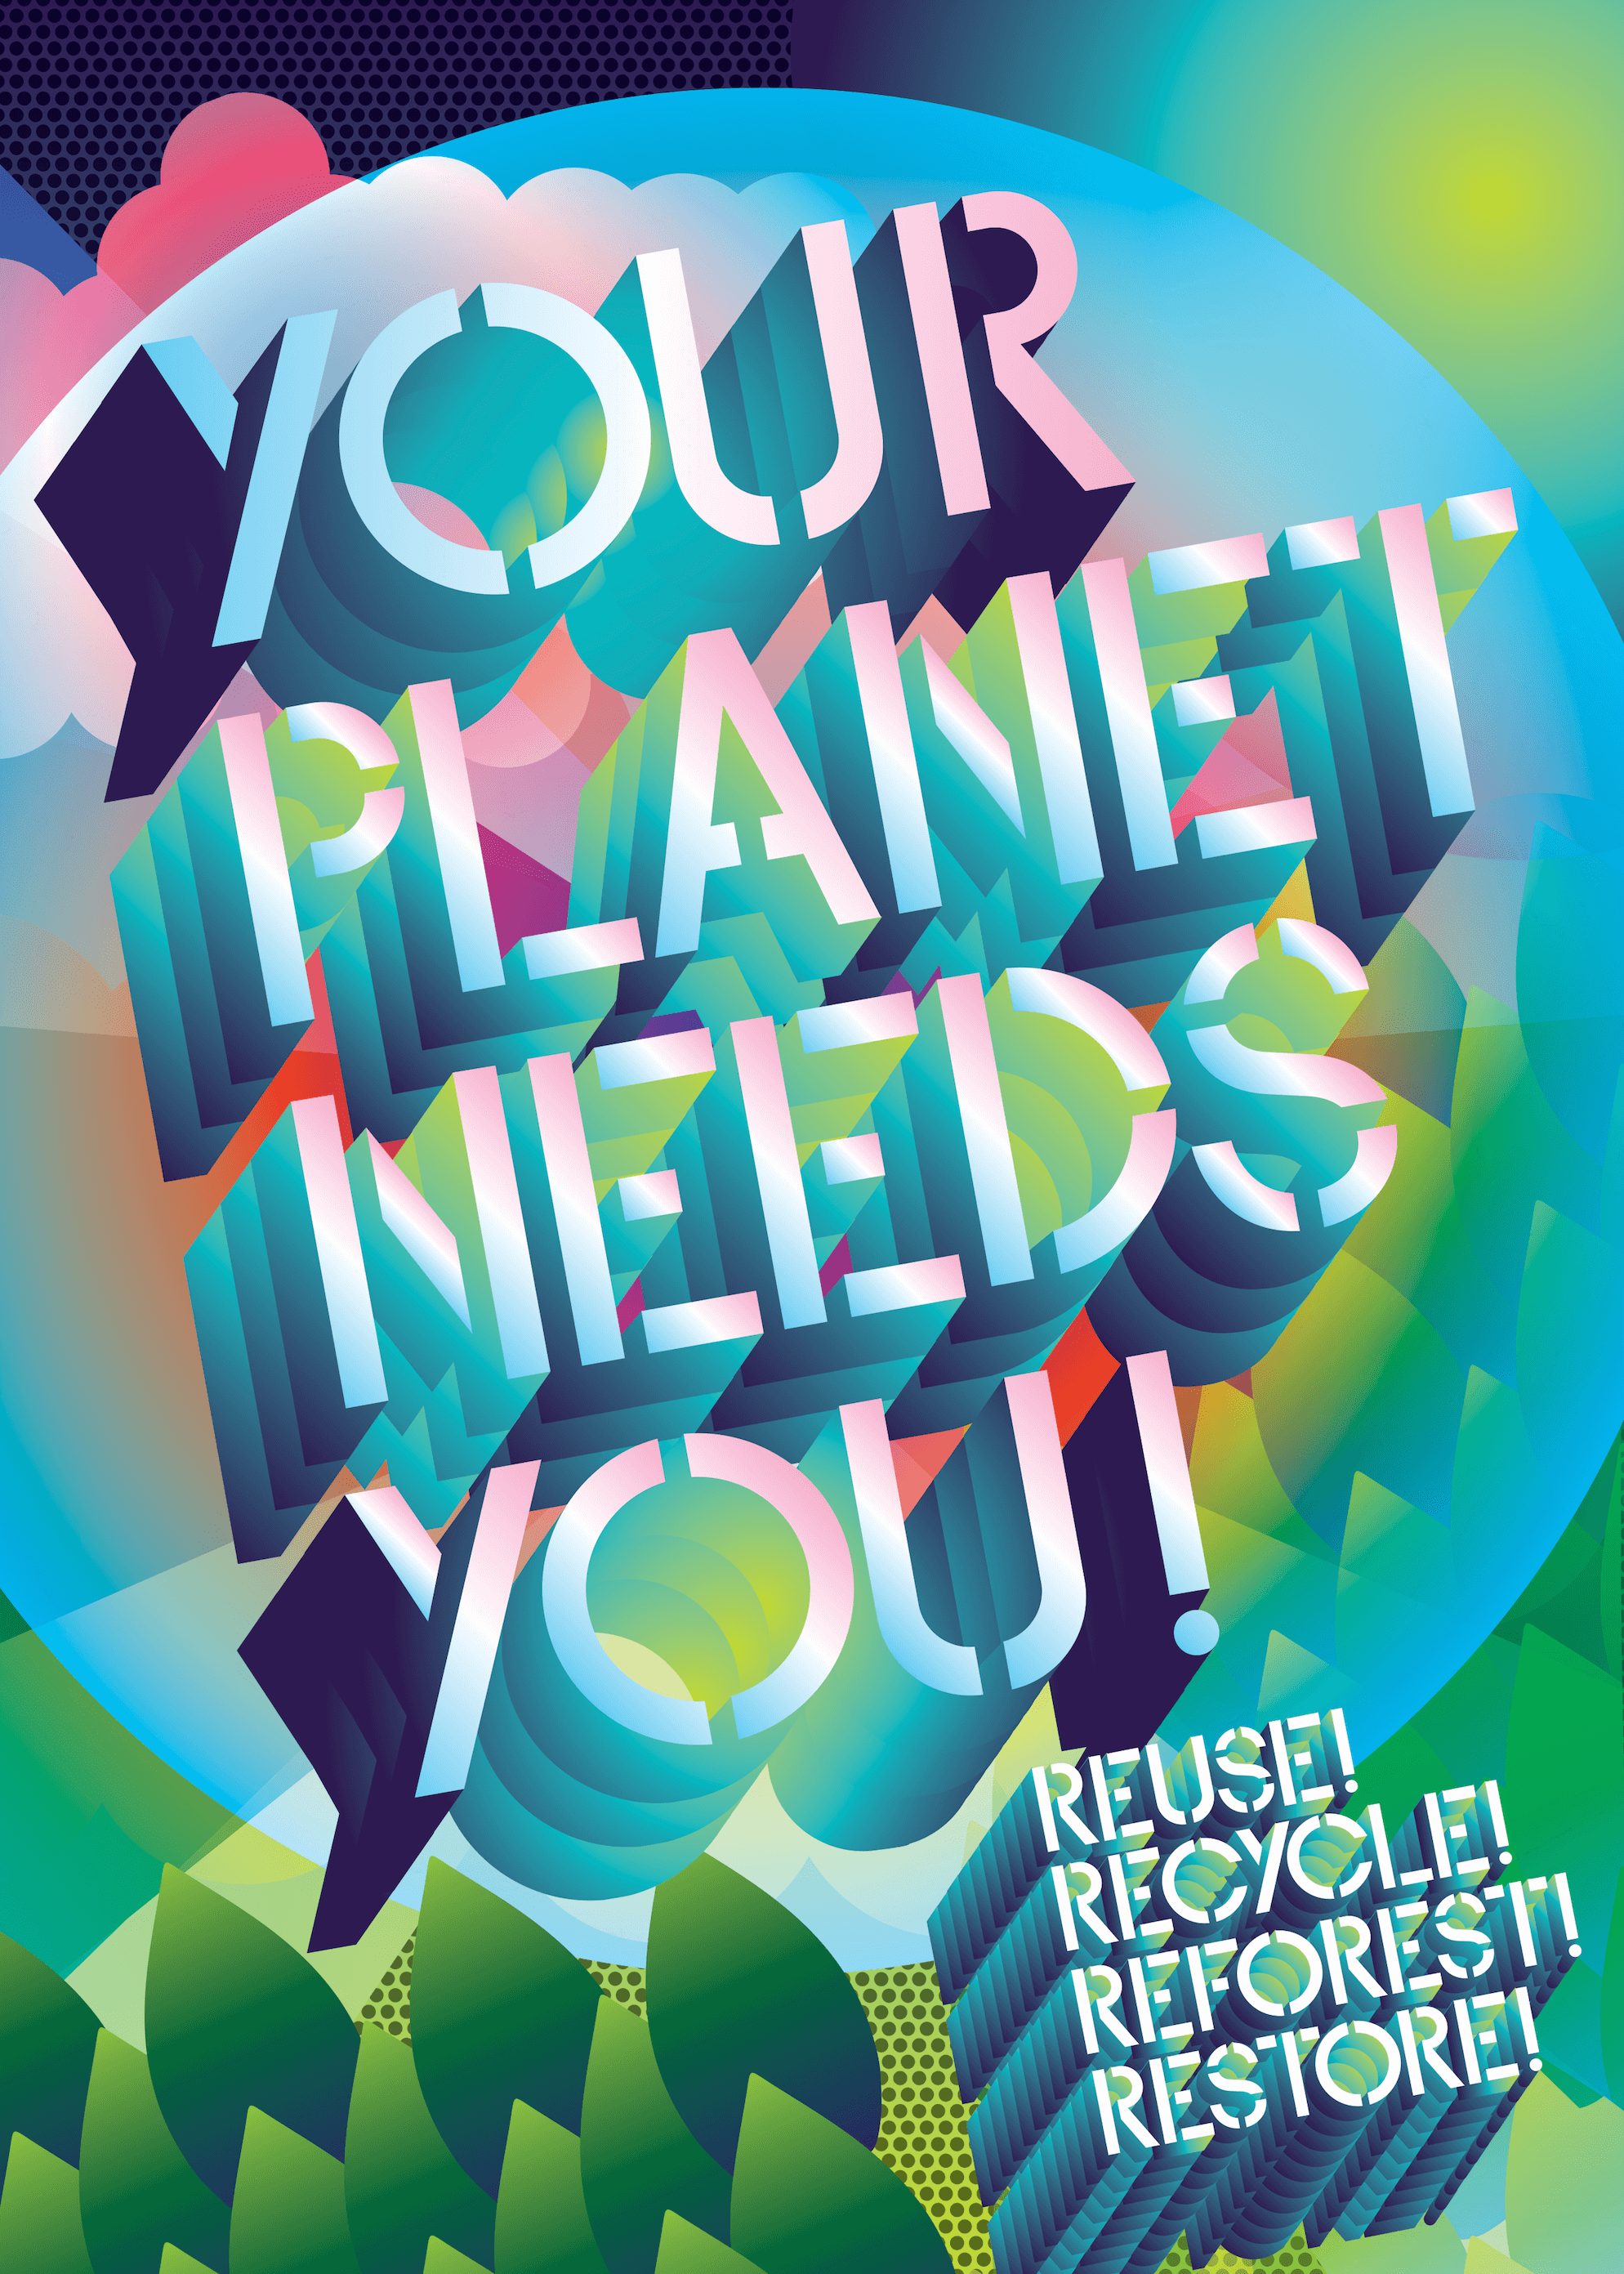 Your Planet Needs You main image